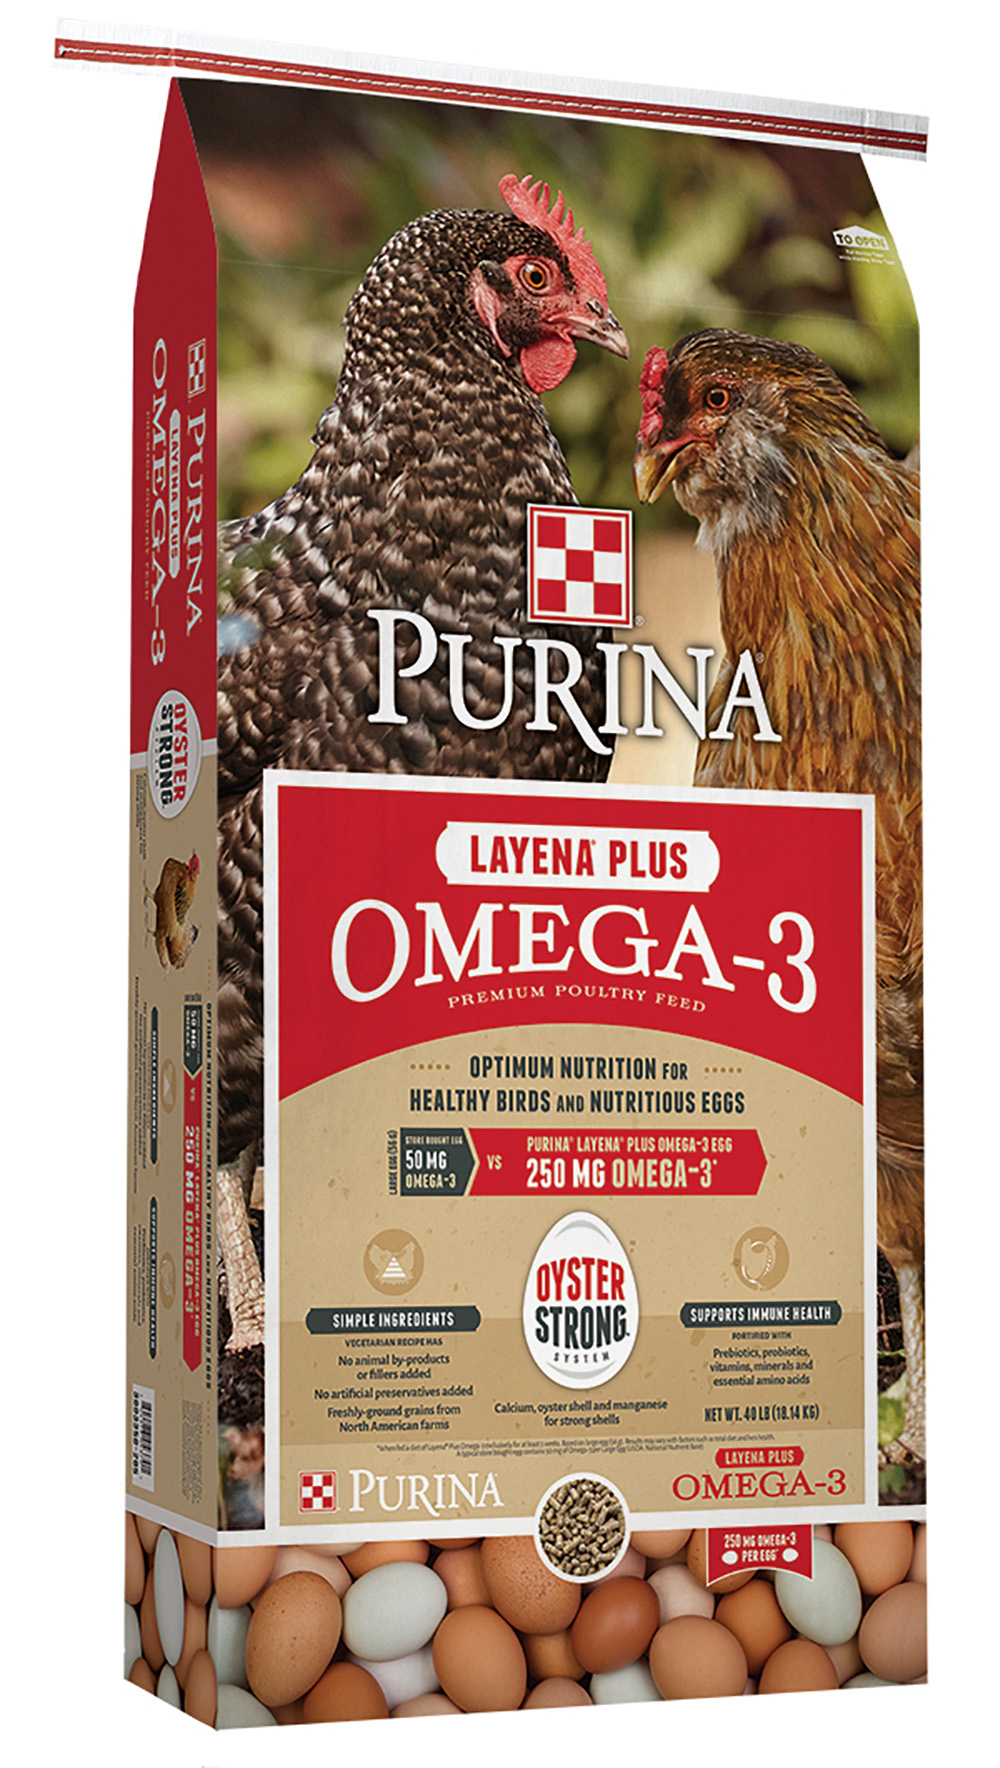 Purina Layena Plus Pellet 40 Lb